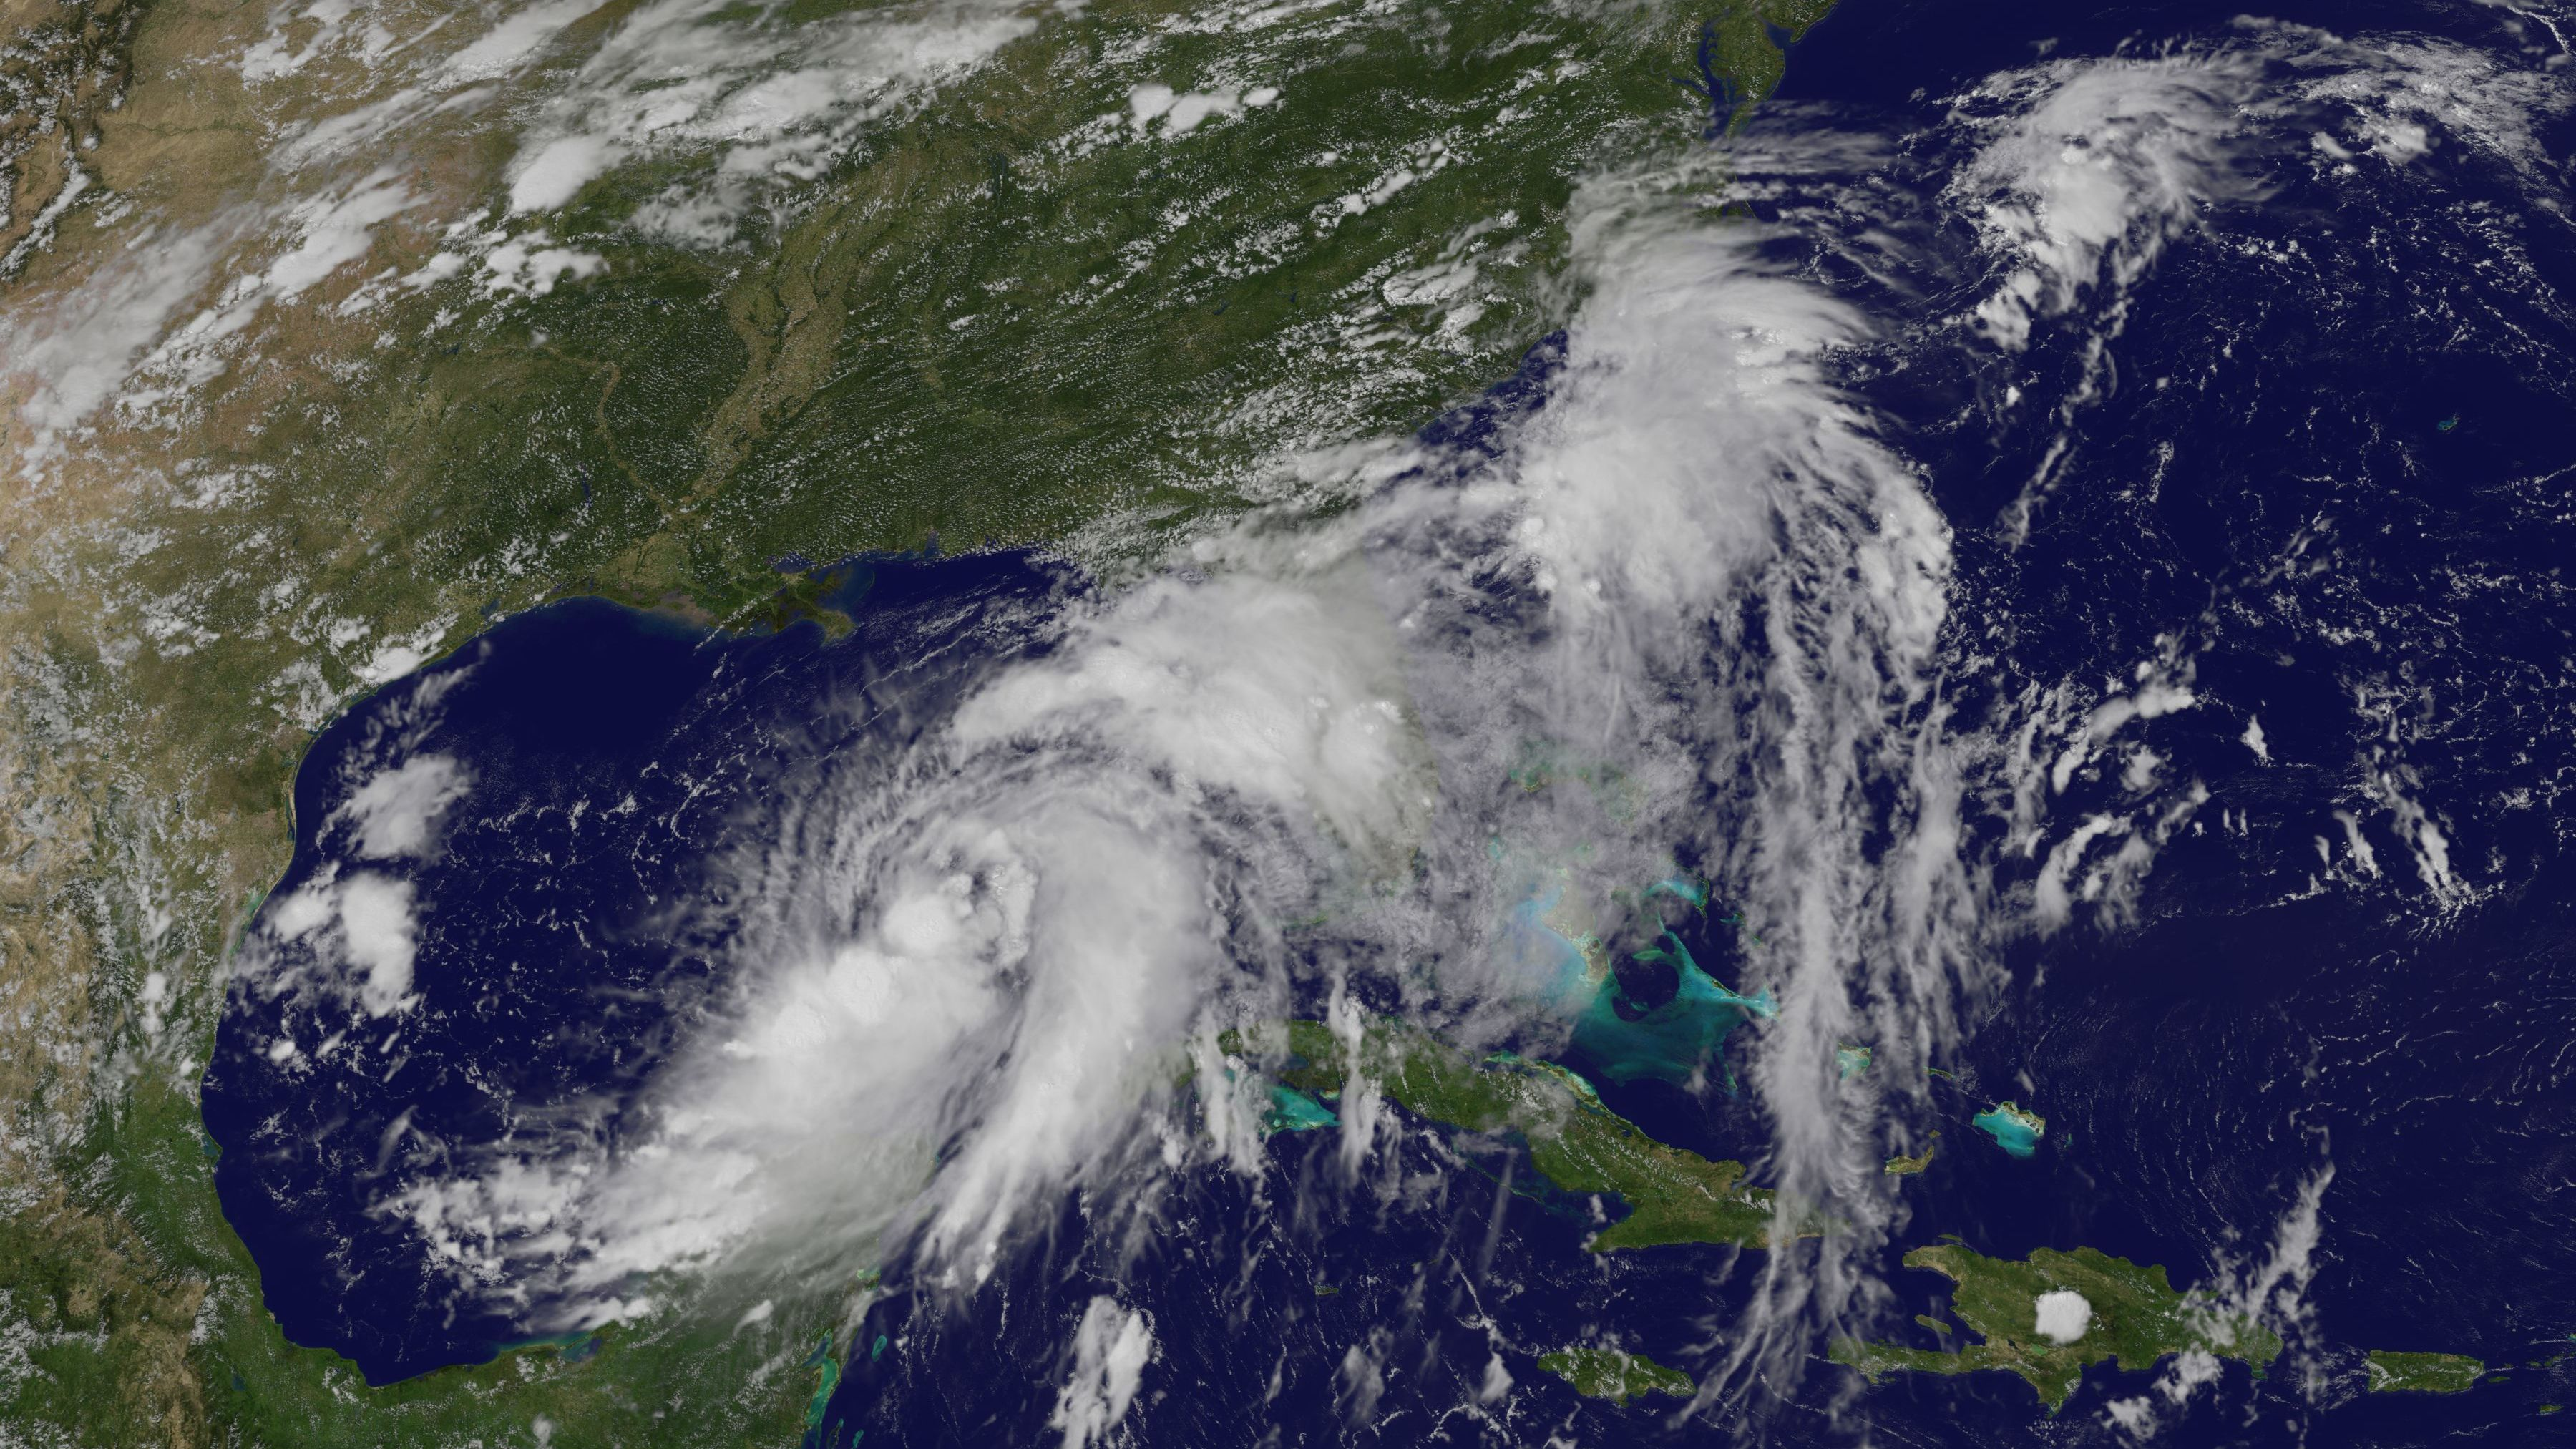 A satellite image shows Tropical Storm Hermine forming in the Gulf of Mexico on Wednesday. The storm is expected to make landfall north of Tampa late Thursday night or early Friday morning, the National Hurricane Center says.